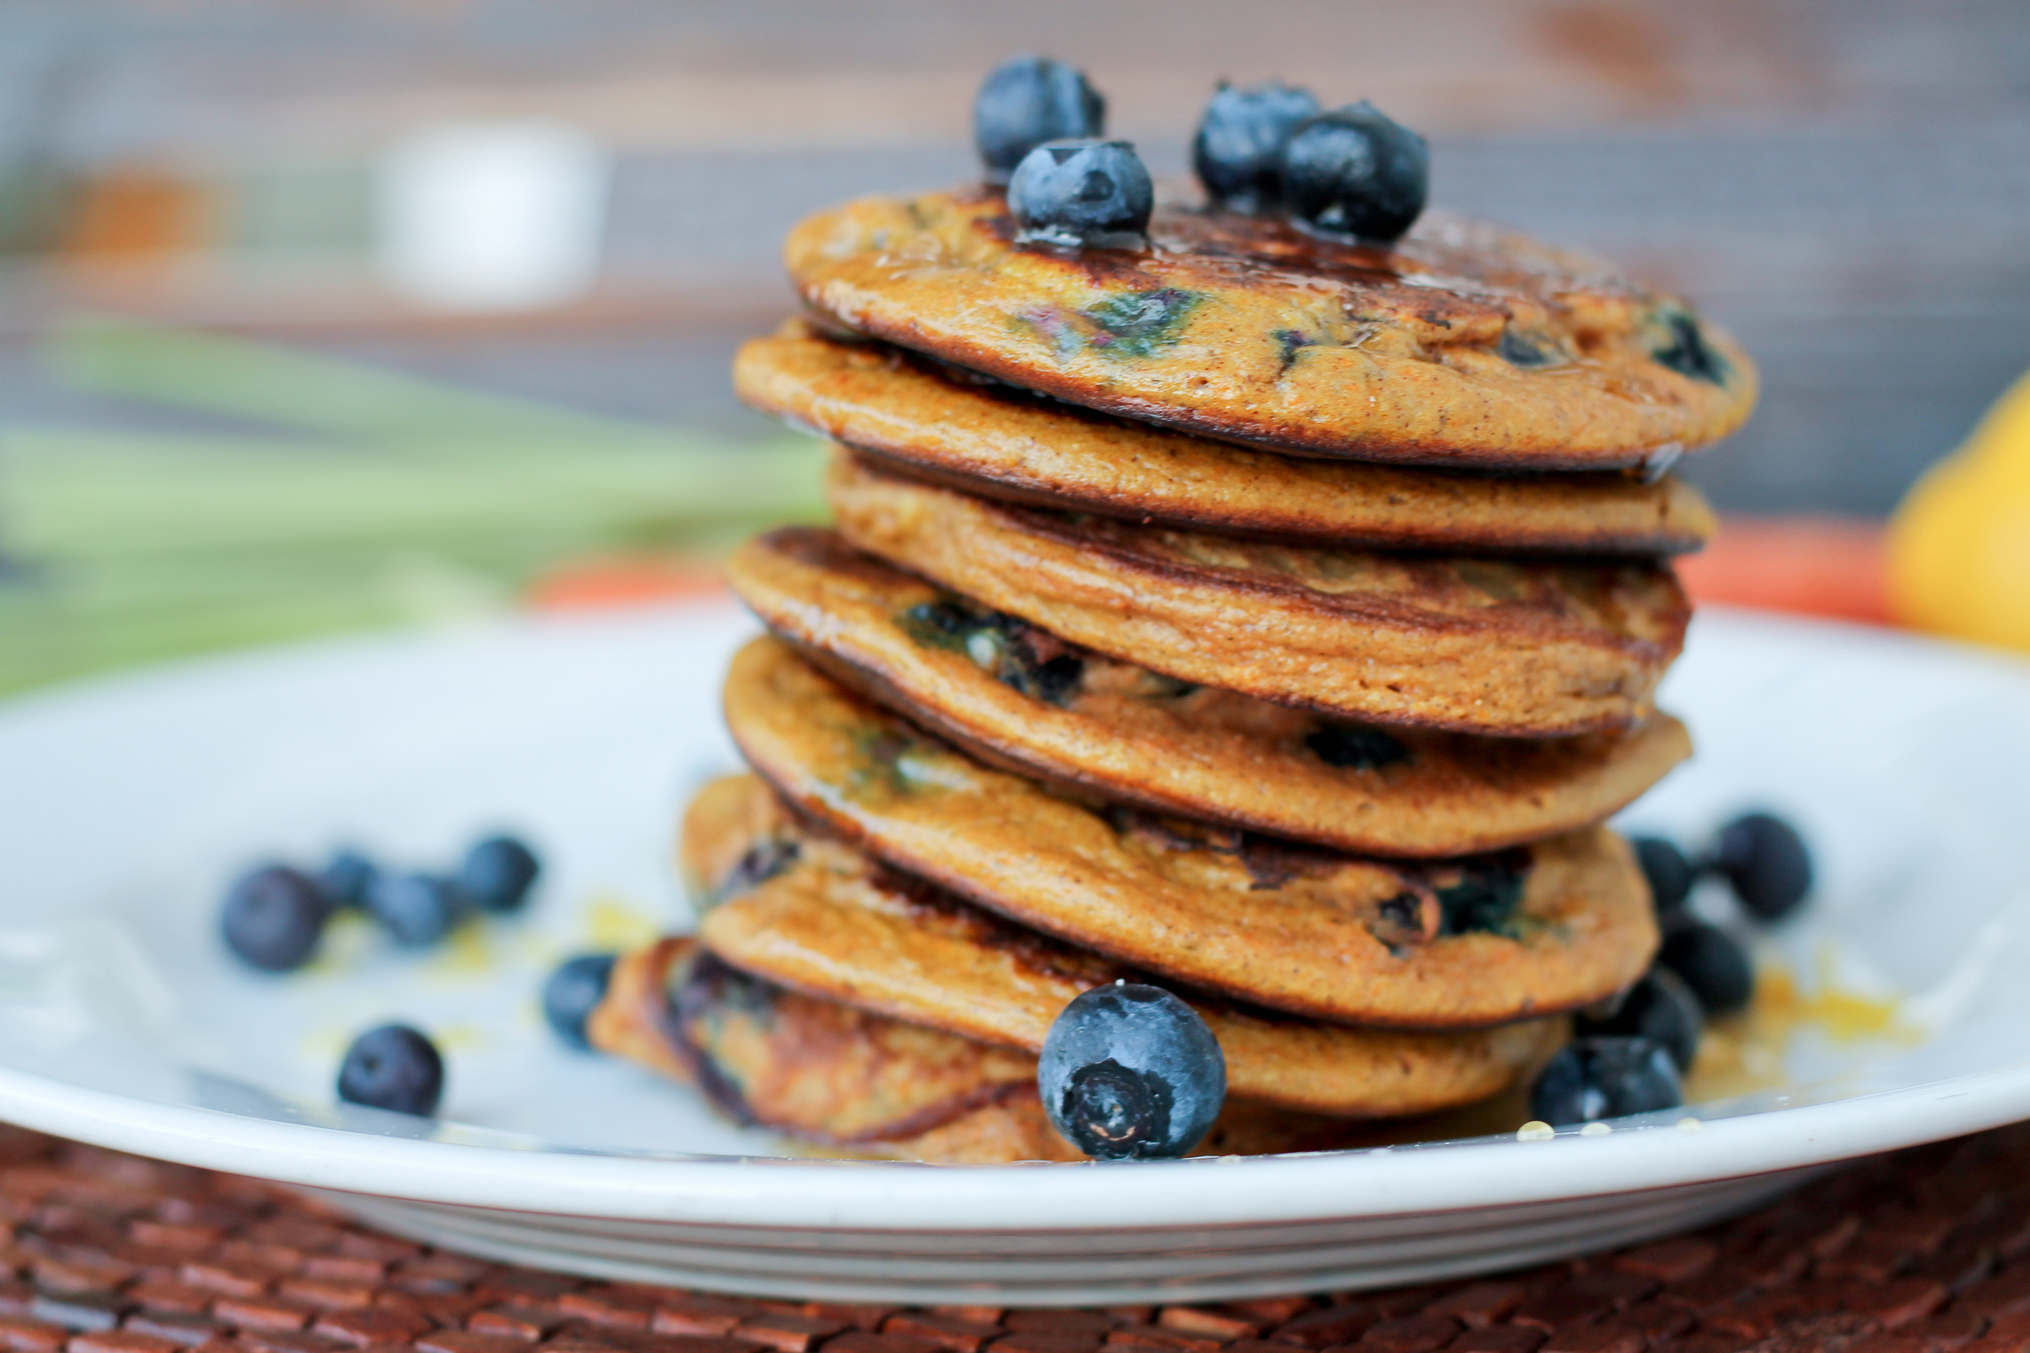 Pancakes – Carrot, Blueberry and Lemon